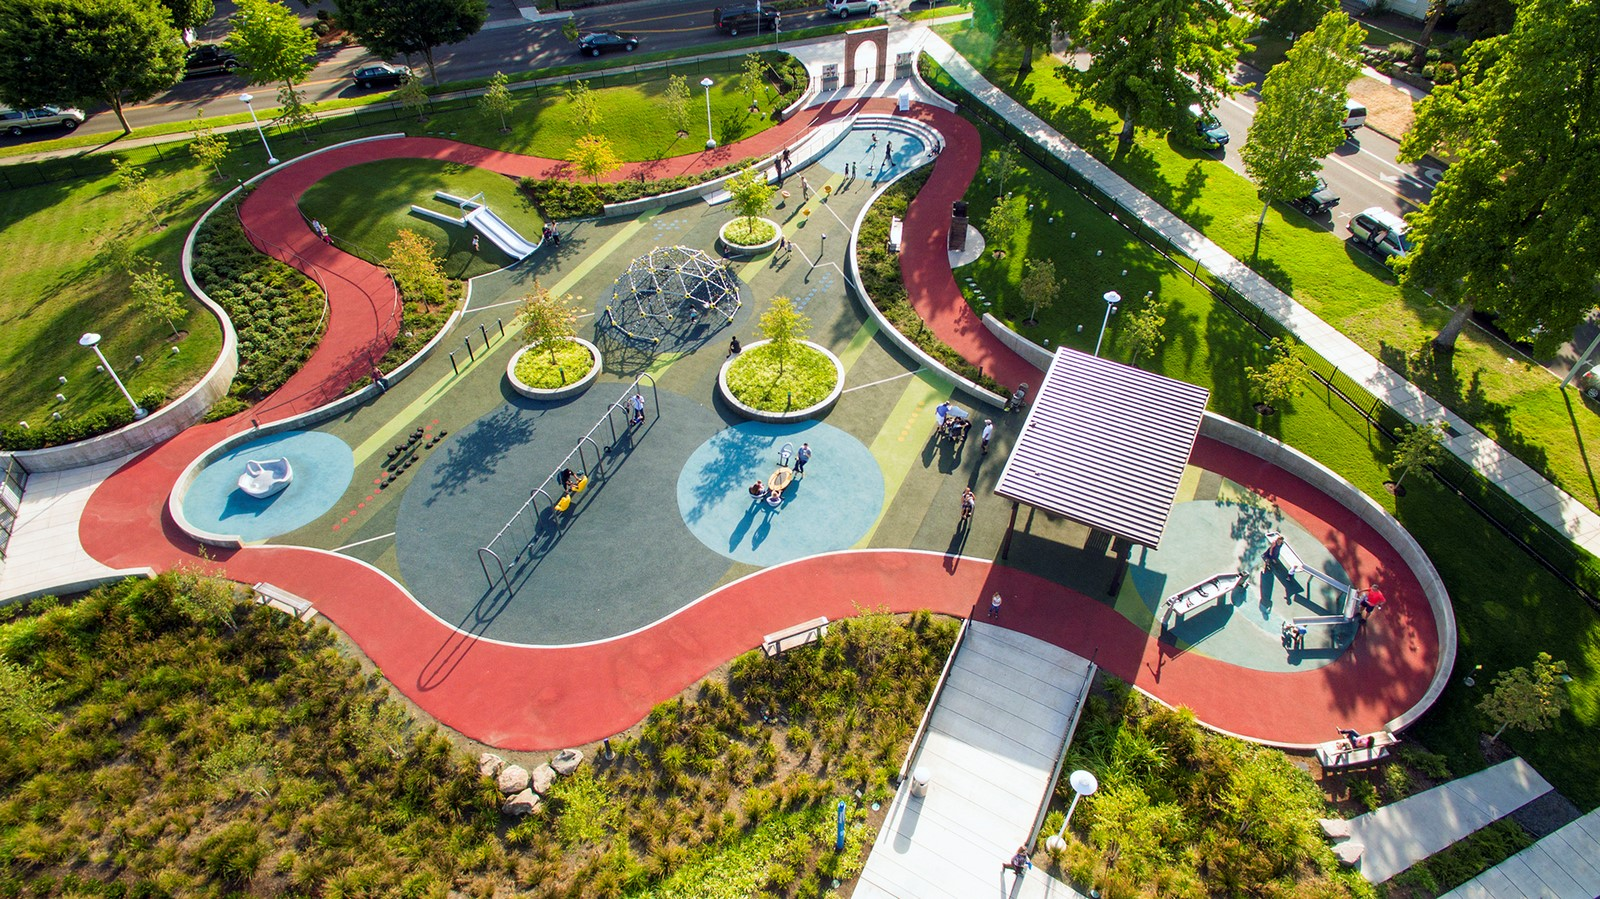 10 things to consider when designing inclusive multicultural public spaces - Sheet6